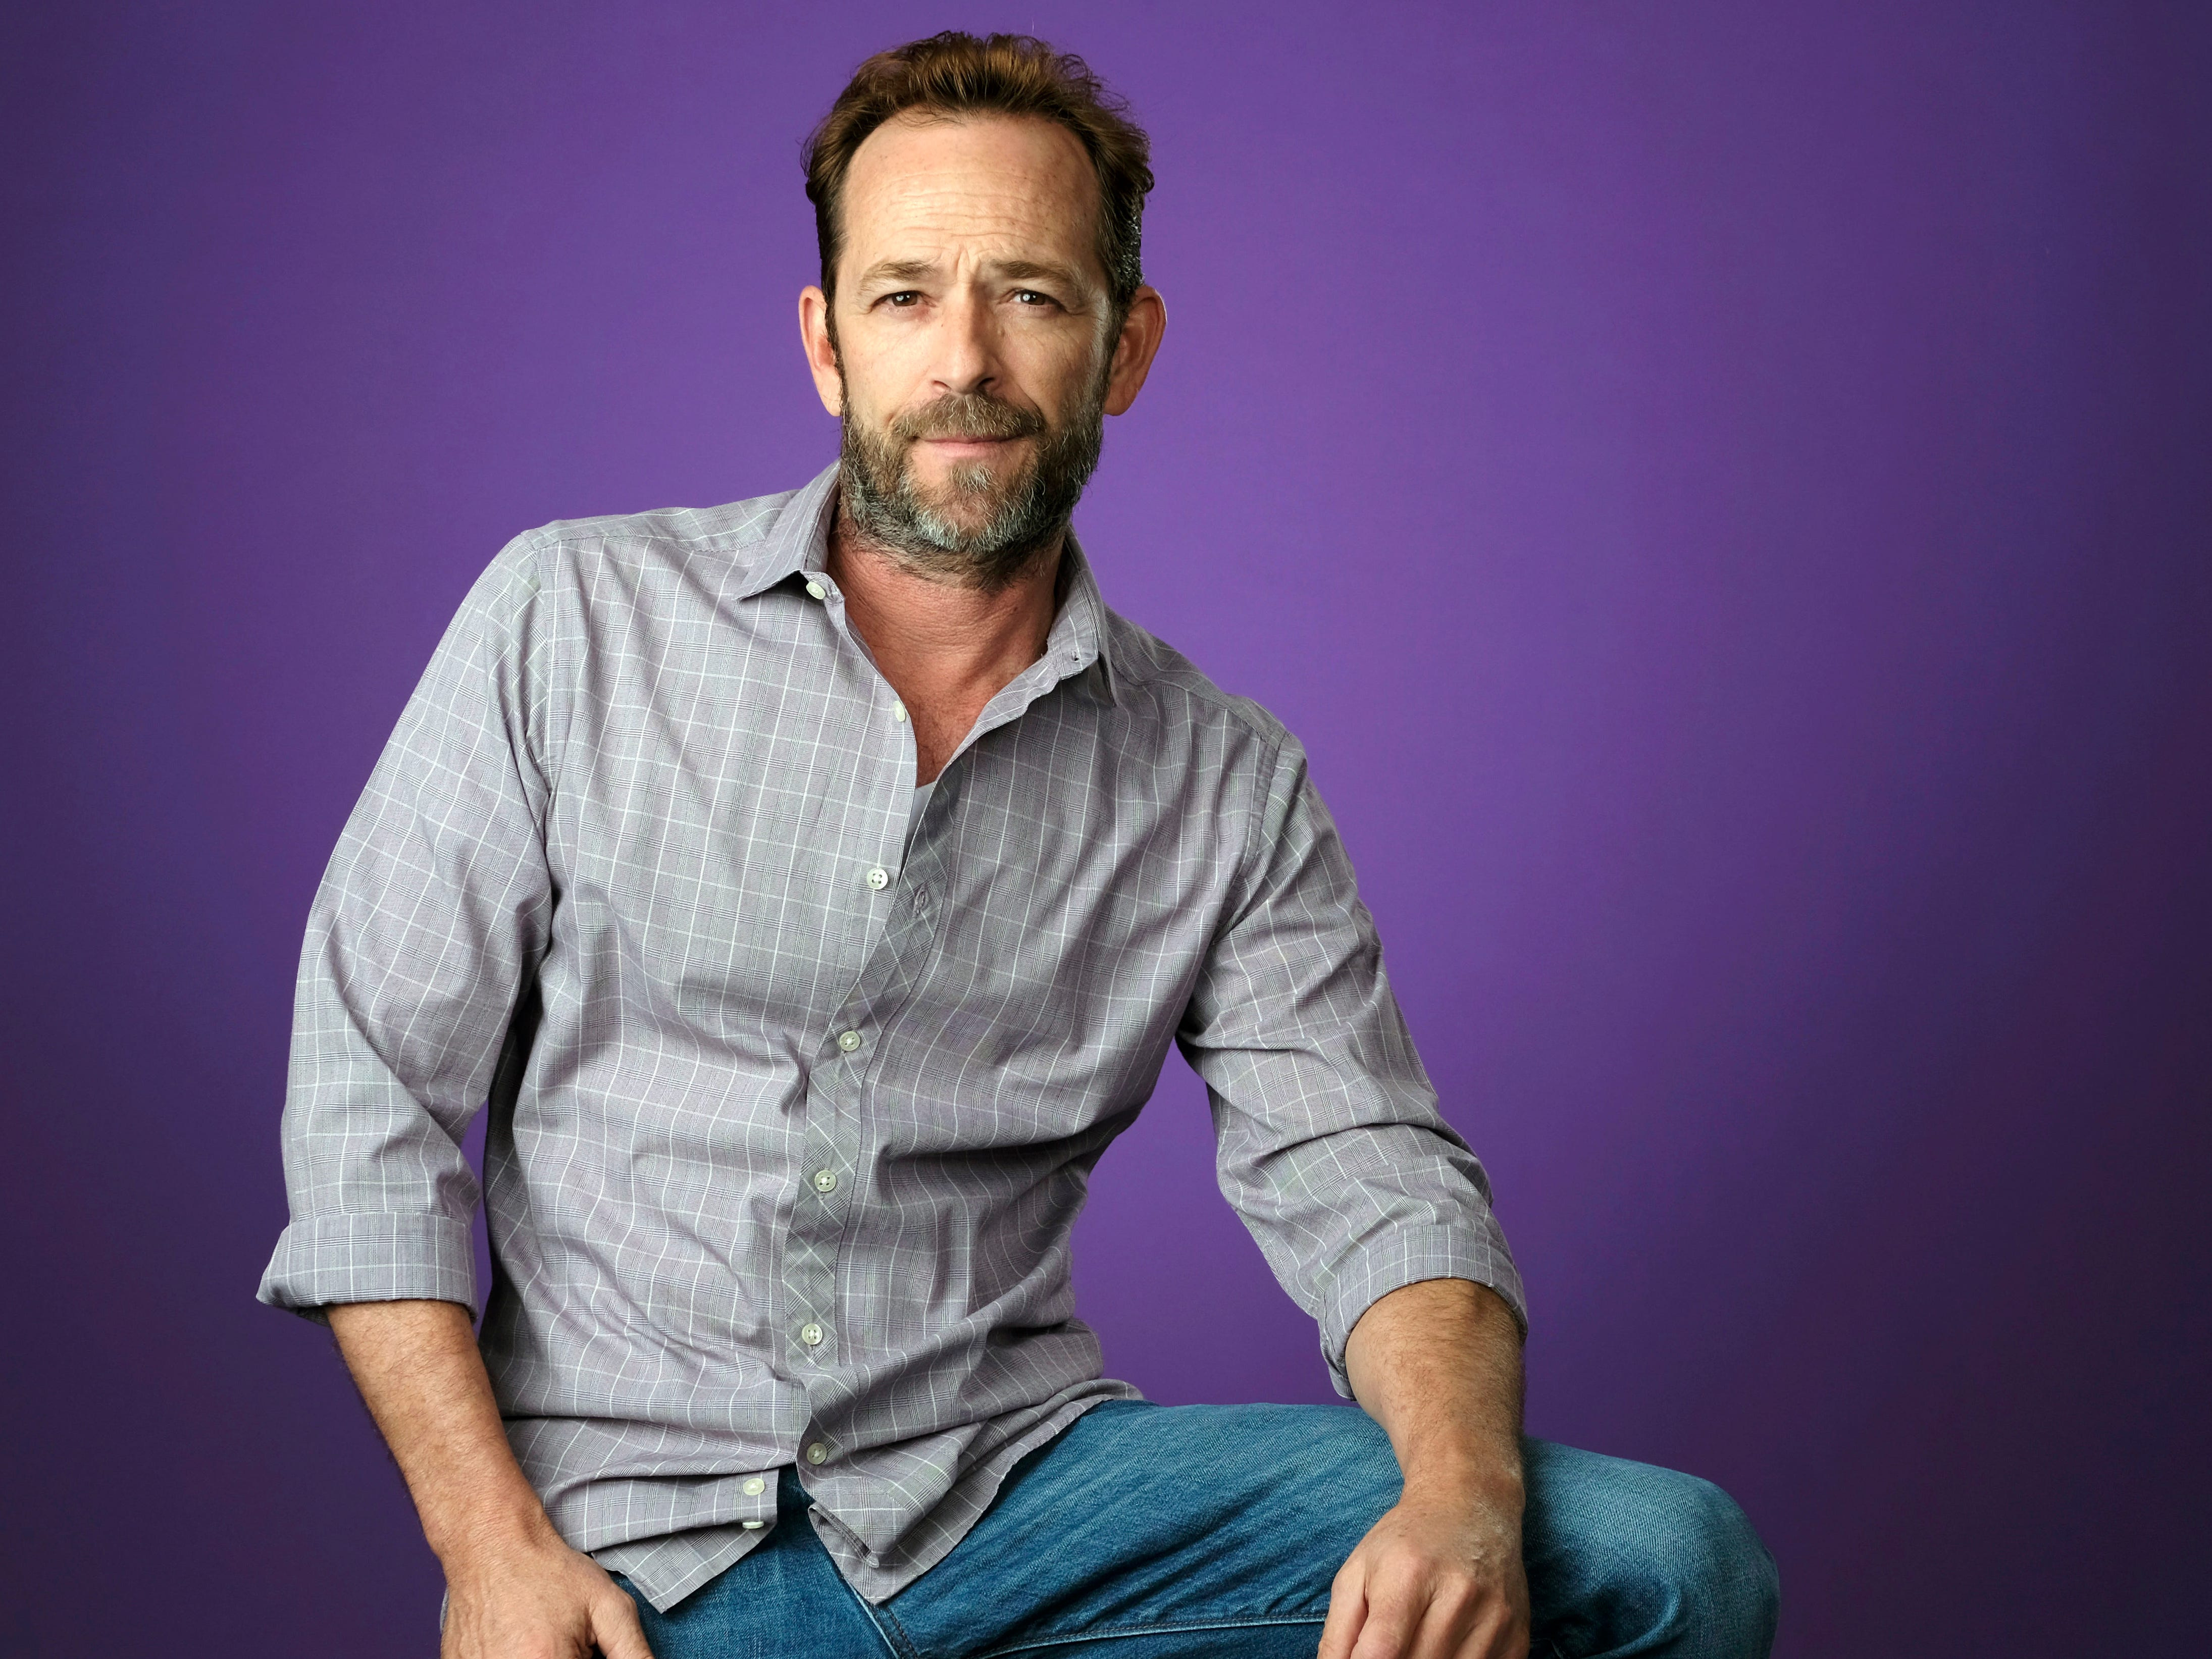 "FILE - In this Aug. 6, 2018, file photo, Luke Perry poses for a portrait during the 2018 Television Critics Association Summer Press Tour in Beverly Hills, Calif. A publicist for Perry says the ""Riverdale"" and ""Beverly Hills, 90210"" star has died. He was 52. Publicist Arnold Robinson said that Perry died Monday, March 4, 2019, after suffering a massive stroke. (Photo by Chris Pizzello/Invision/AP, File) ORG XMIT: NYCD901"